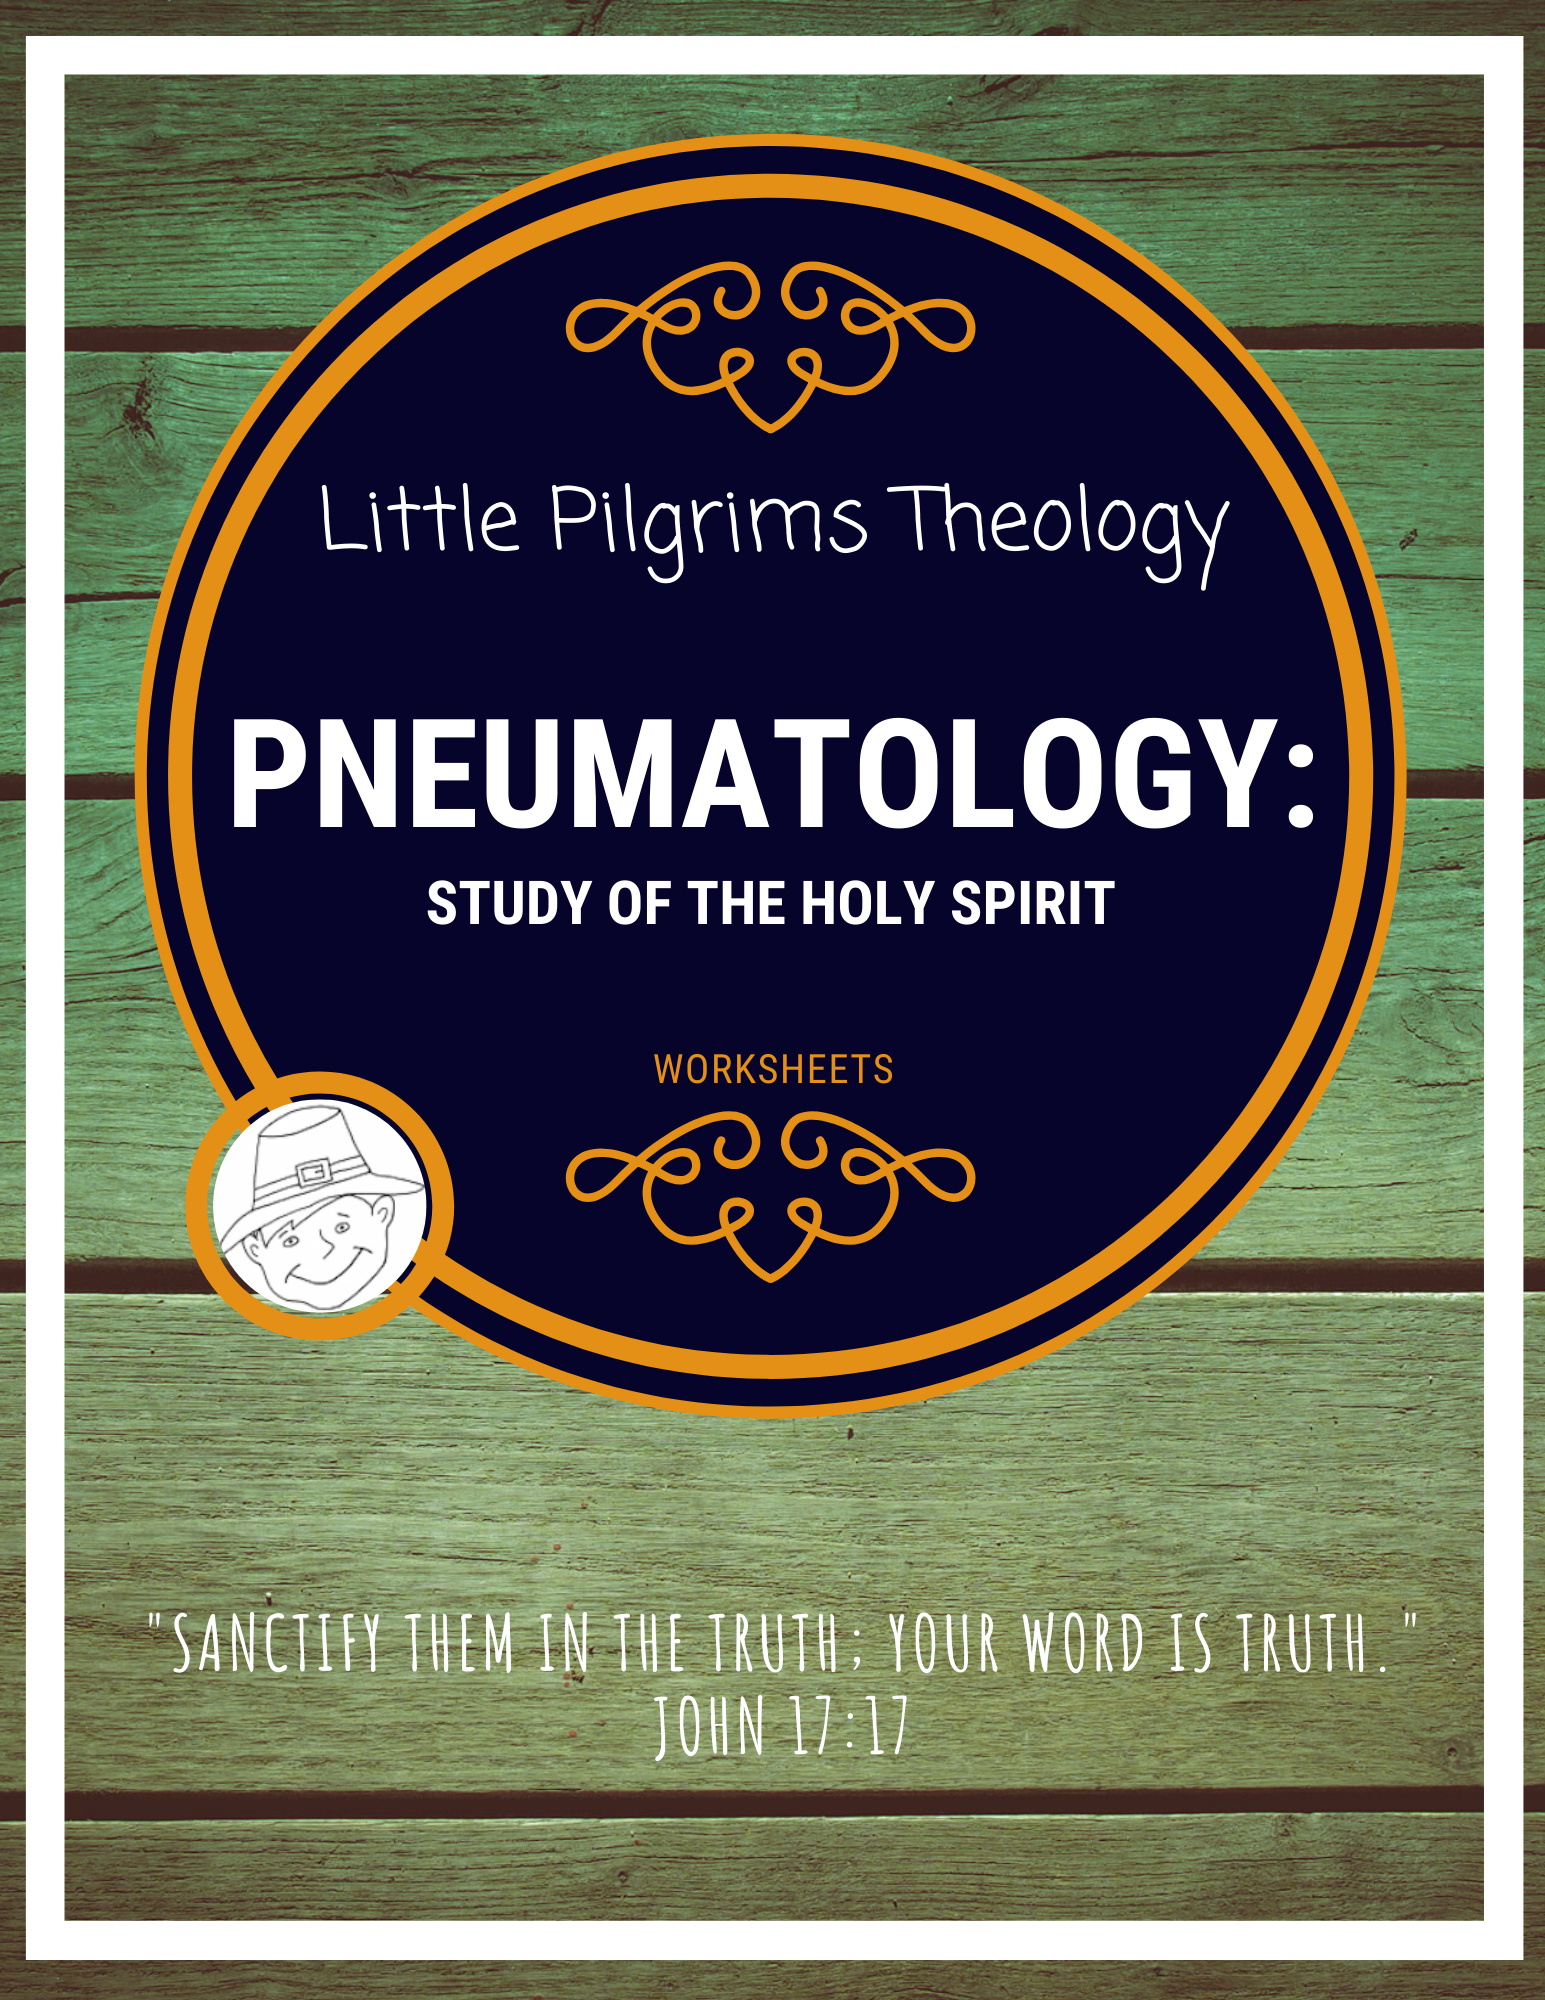 pneumatology-book-button